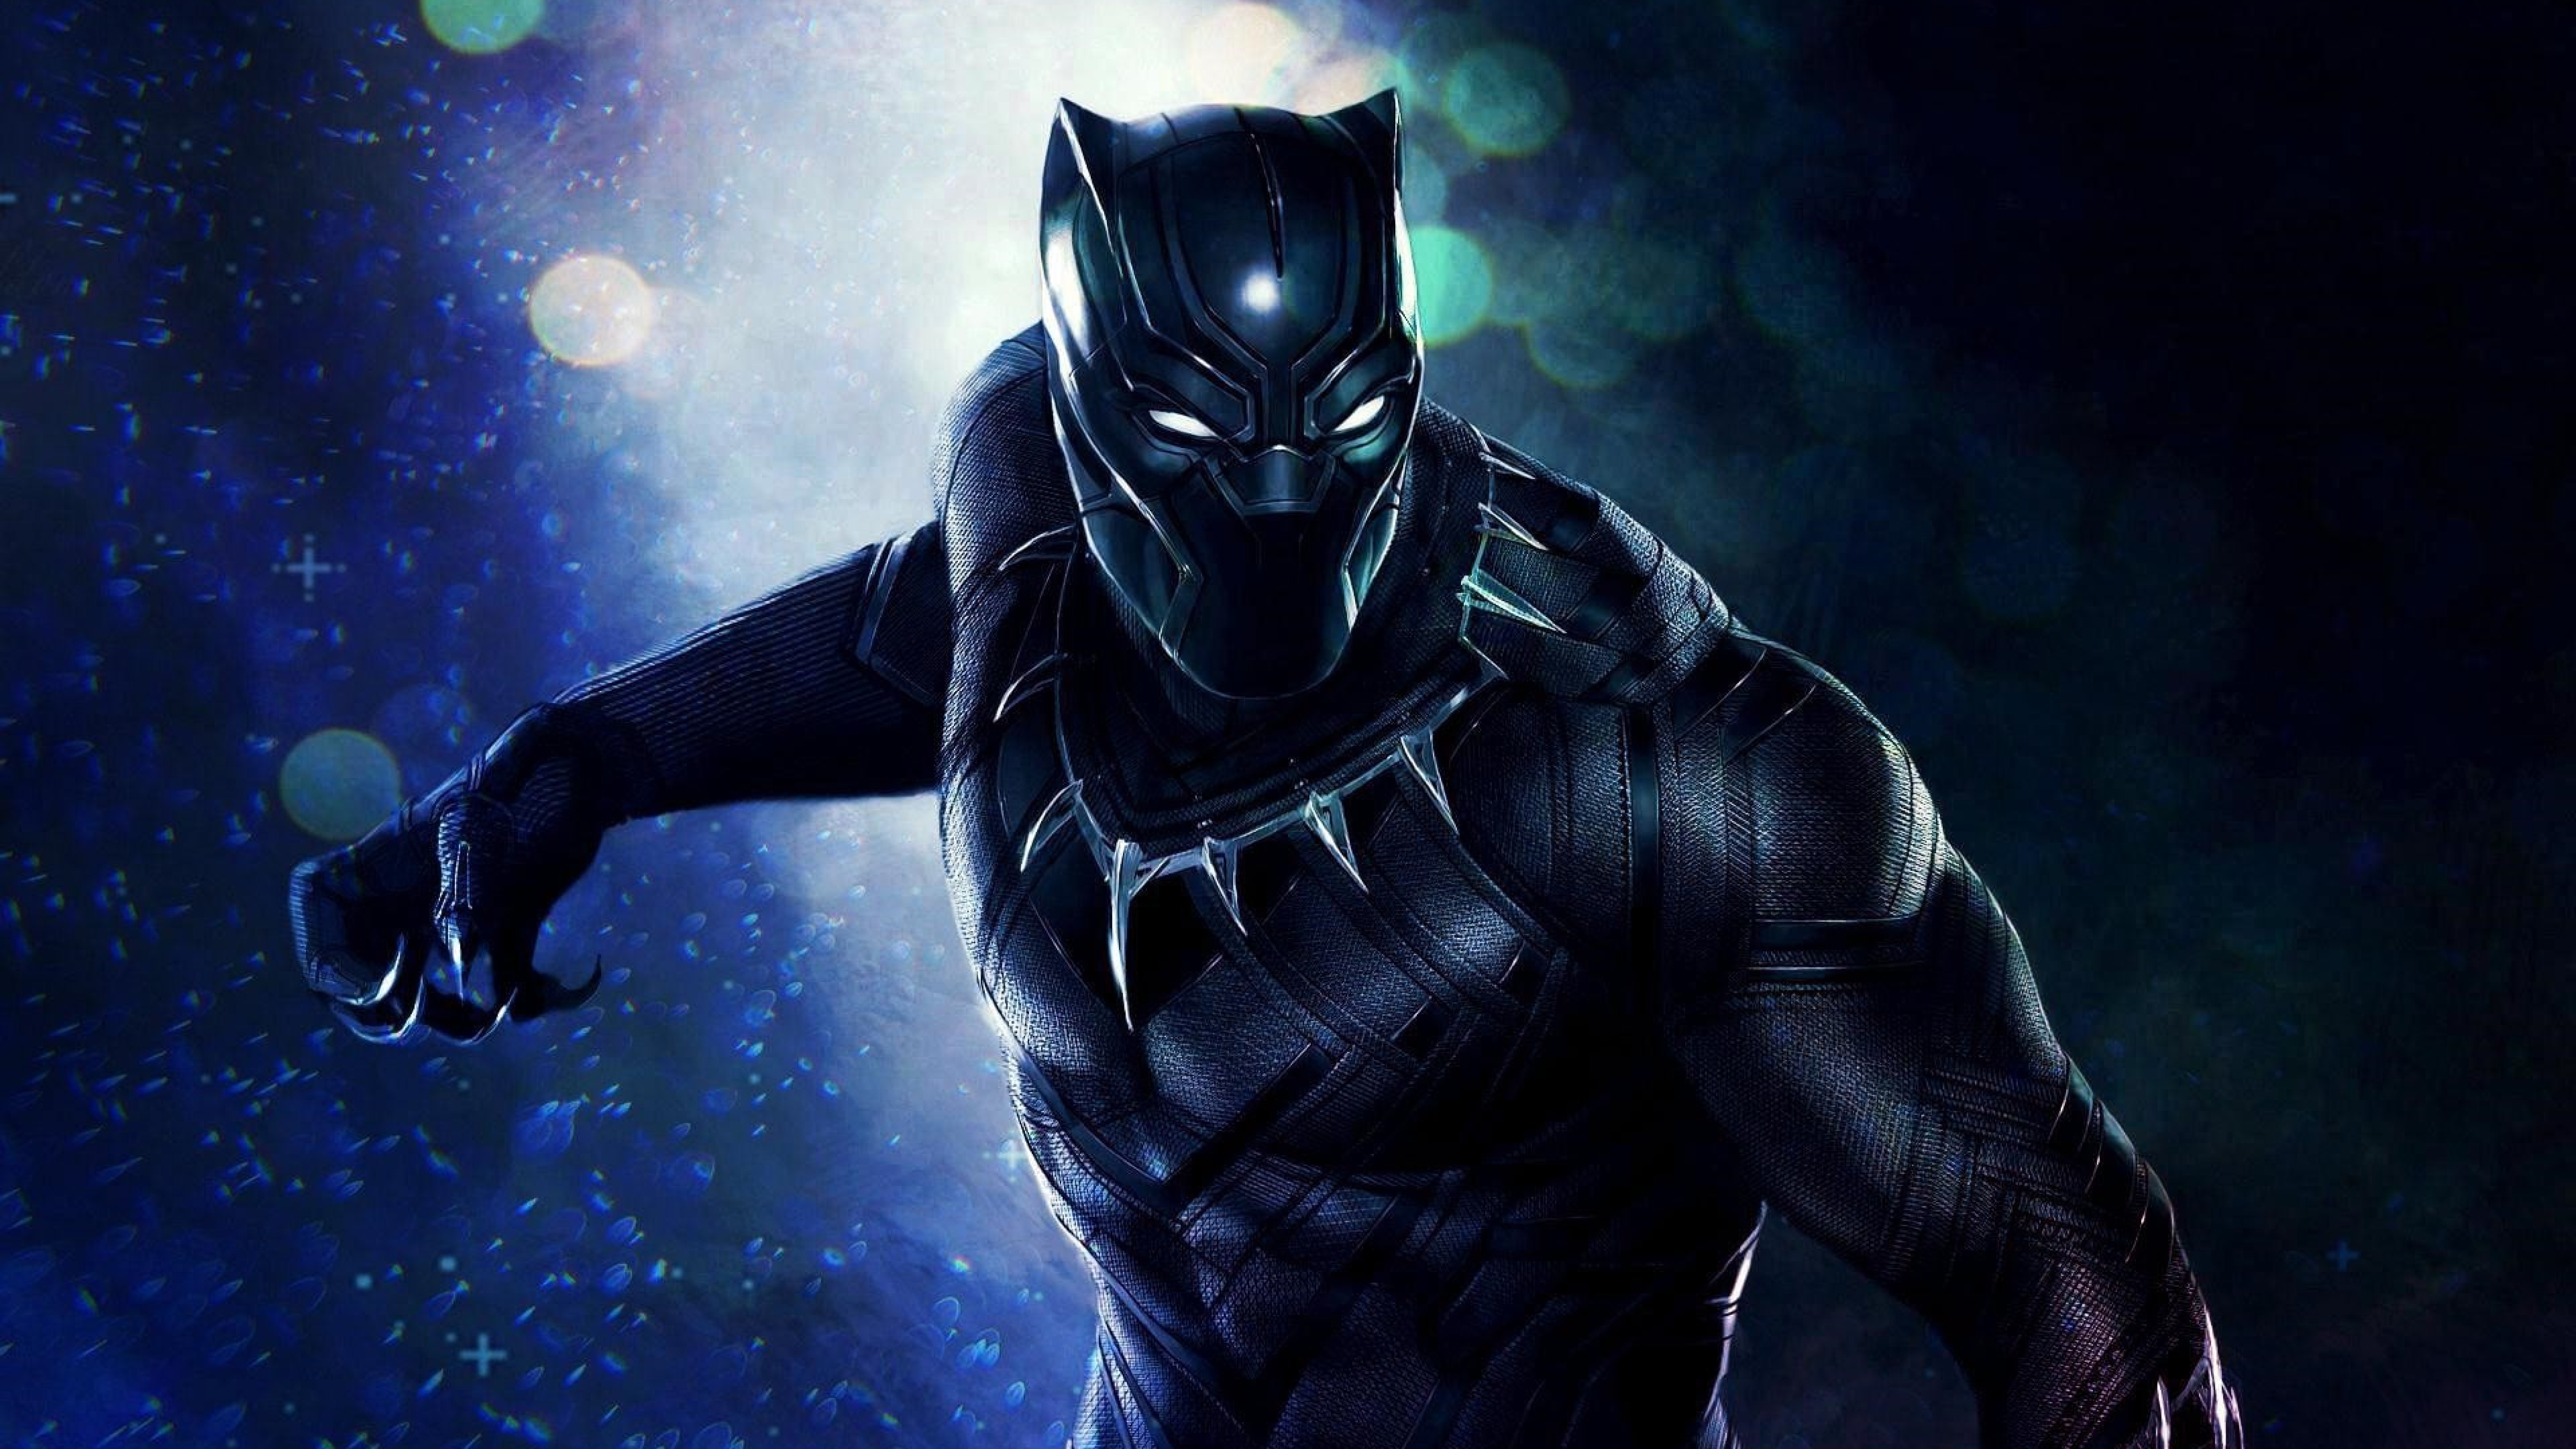 Free Download Black Panther 2018 Movie Wallpaper Hd 7680x4320 For Your Desktop Mobile Tablet Explore 76 Every Day Movie 2018 Wallpapers Every Day Movie 2018 Wallpapers Wallpapers Every Day Wallpaper Every Day